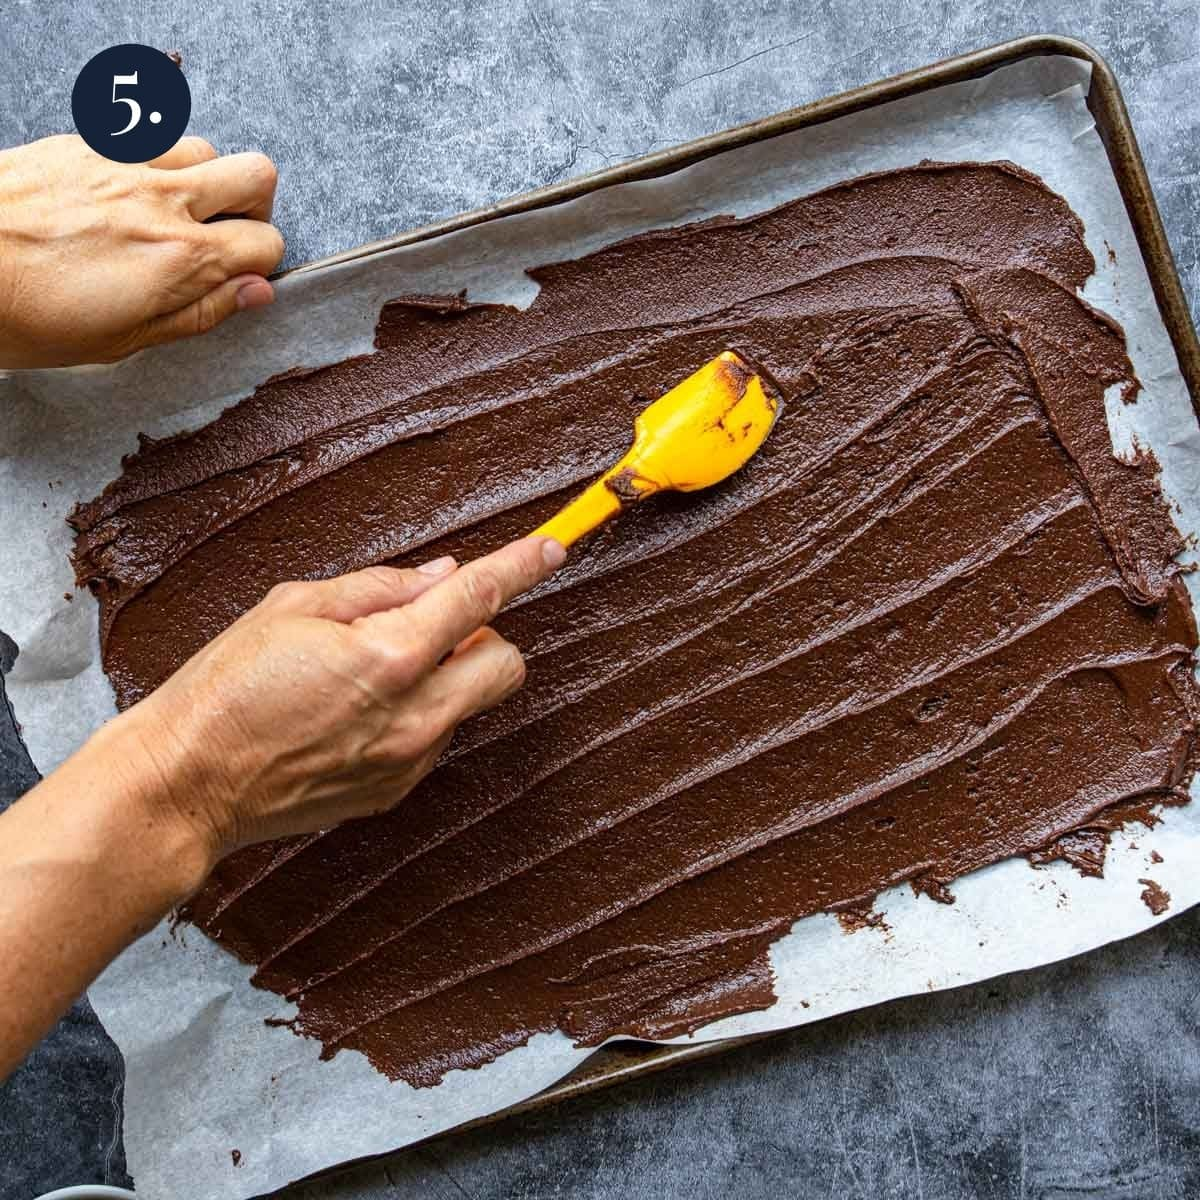 painting brownie brittle batter onto parchment paper